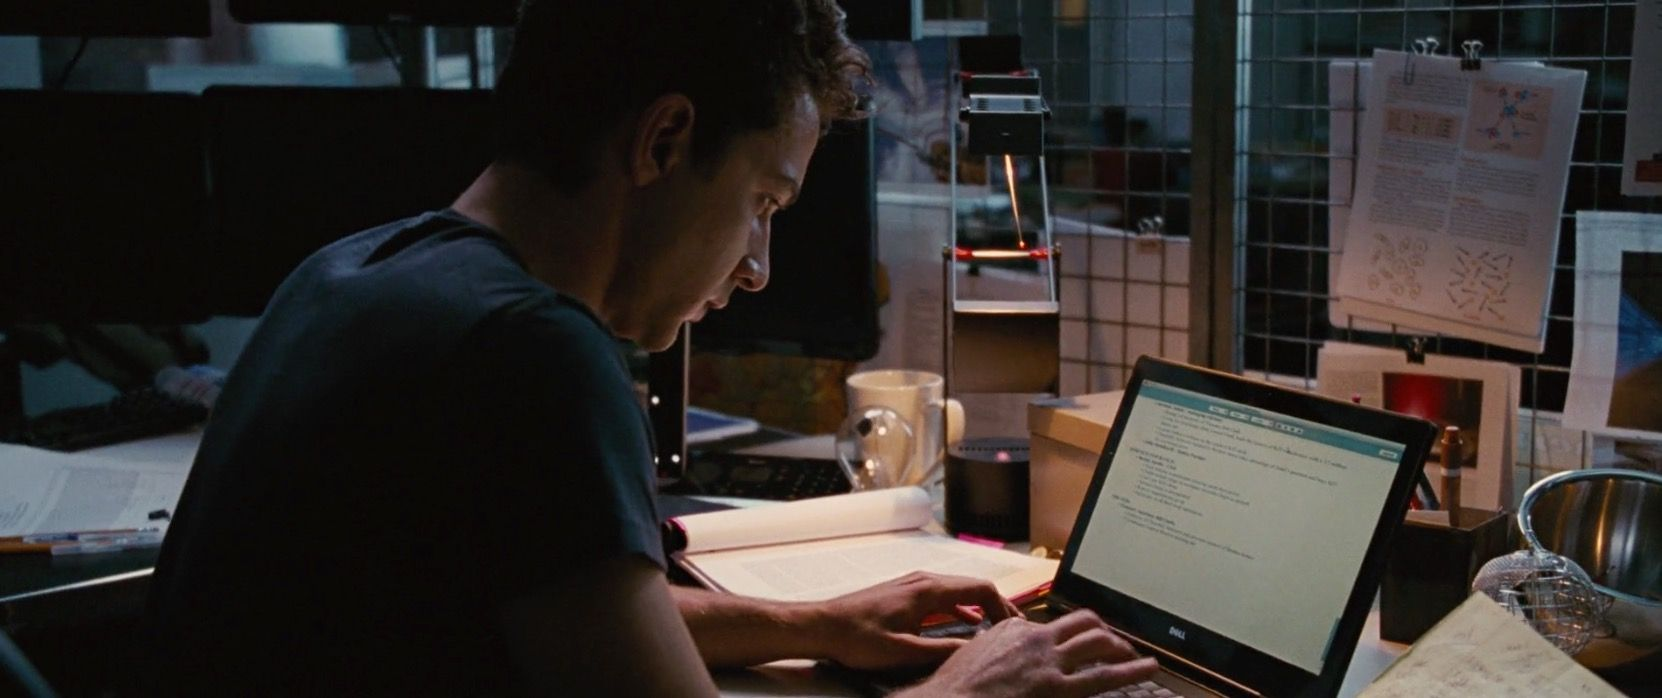 dell laptop used by shia labeouf in wall street money on wall street movie id=64821